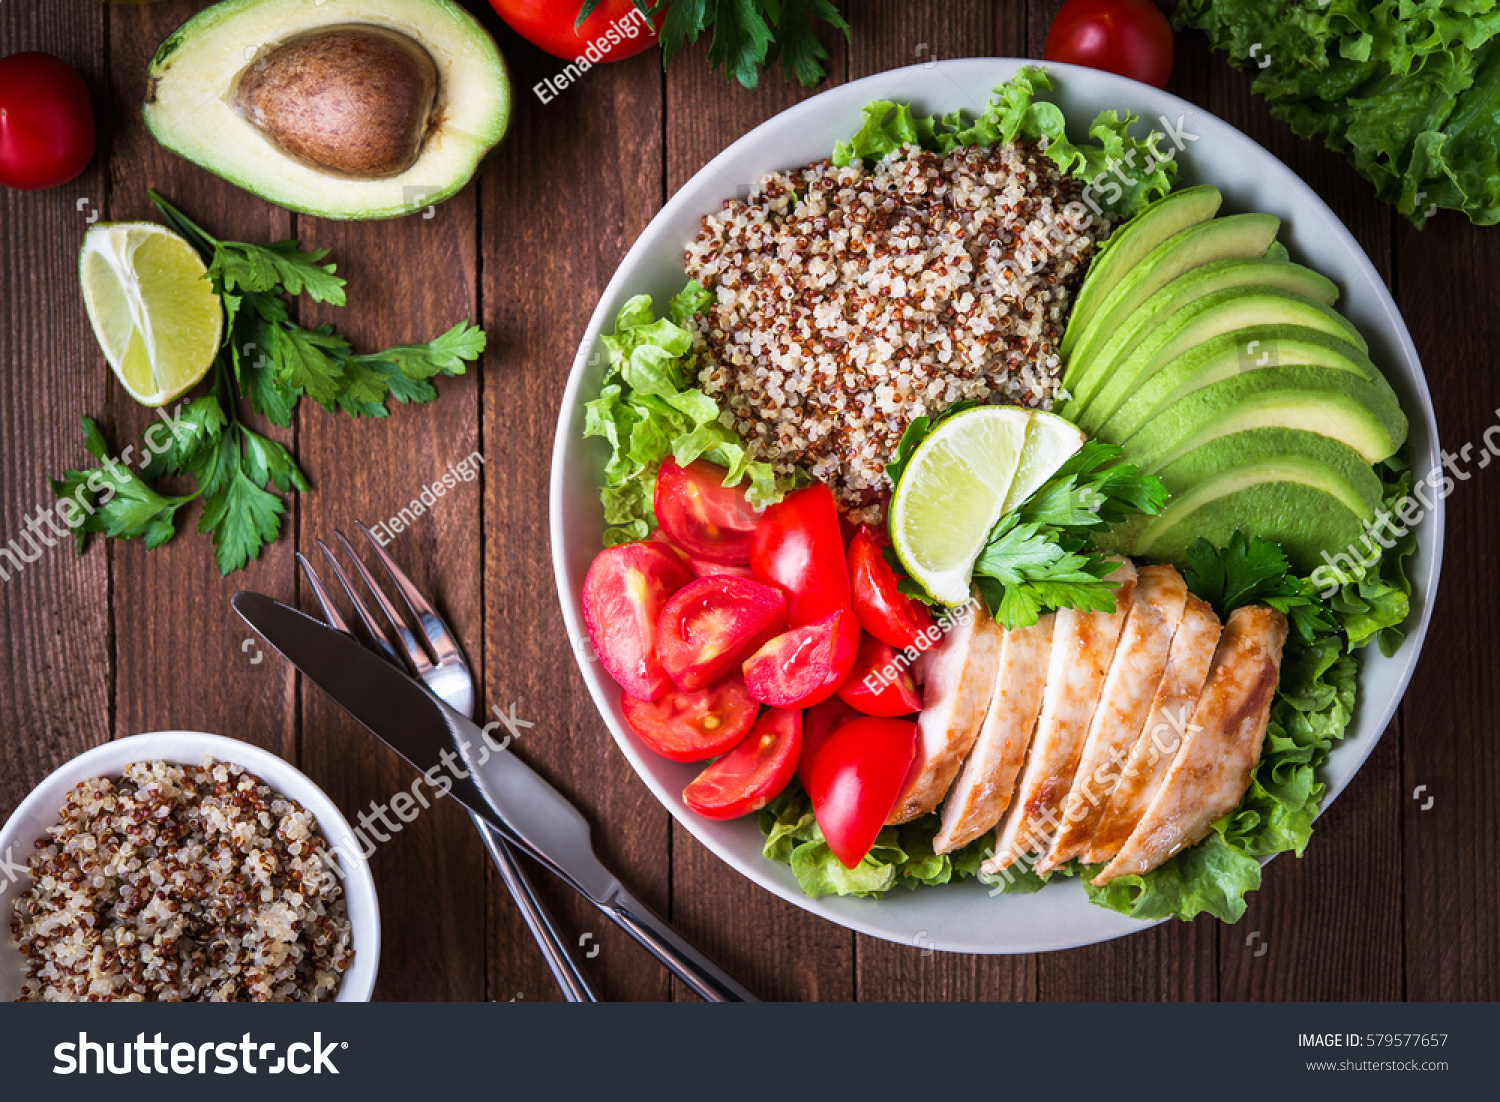 healthy salad plate quinoa cherry tomatoes stock photo 579577657 shutterstock. Black Bedroom Furniture Sets. Home Design Ideas